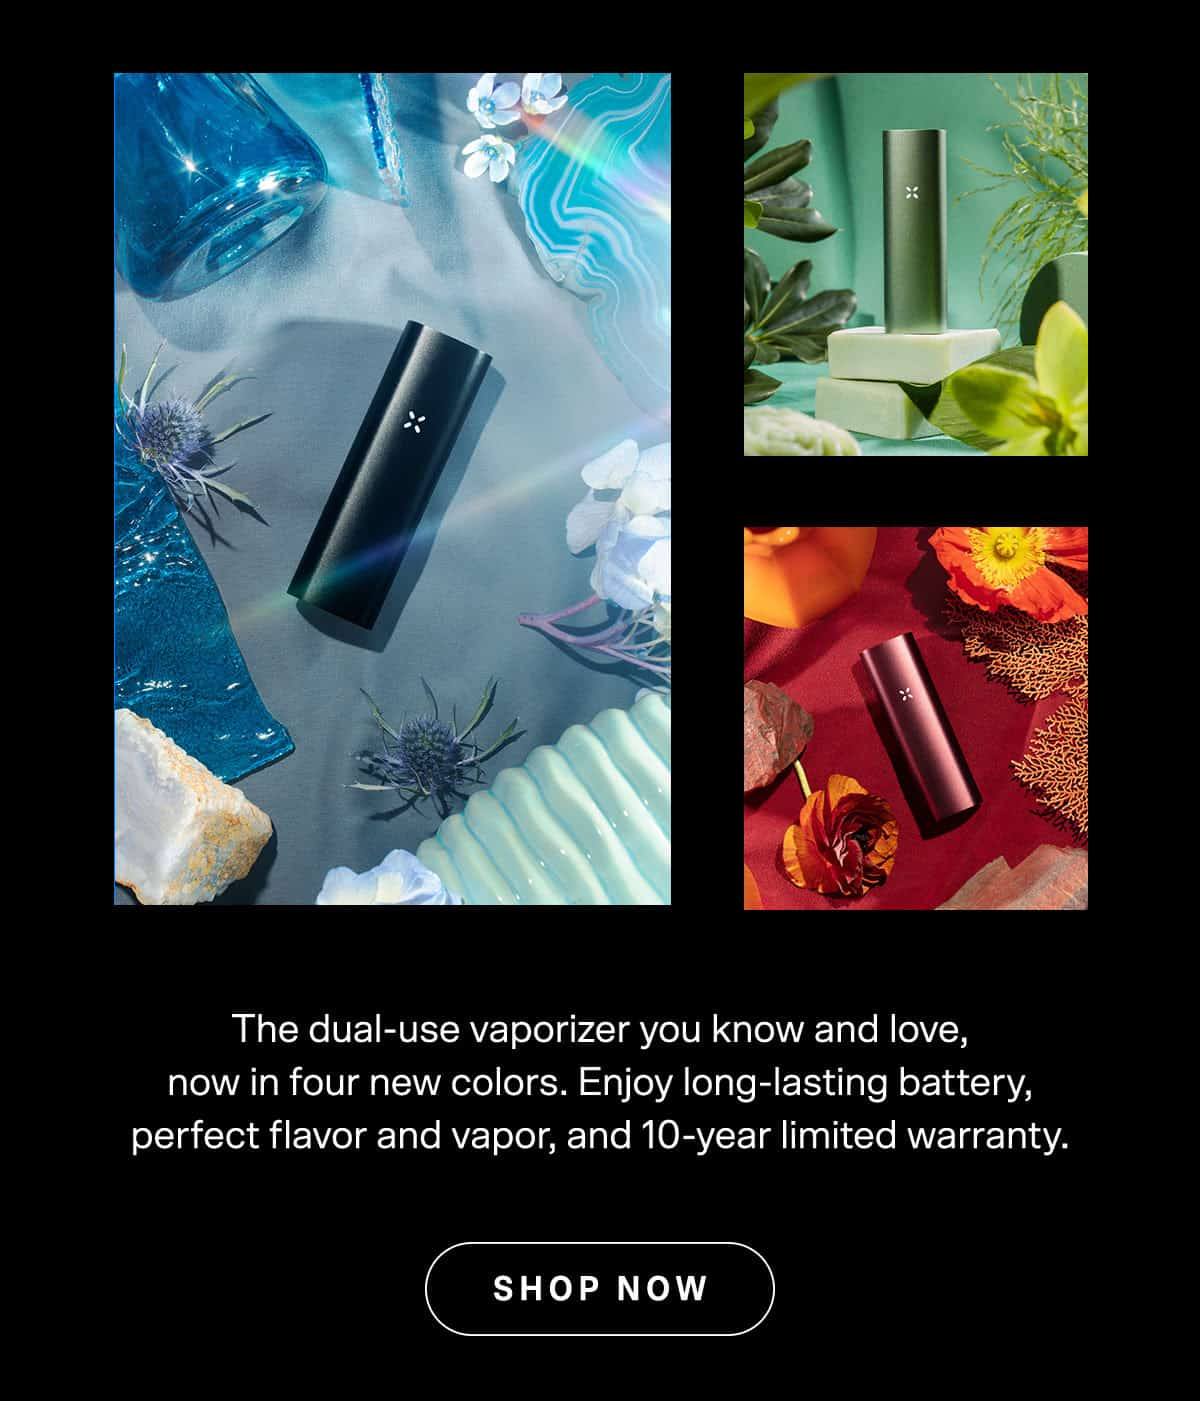 Pax 3 Is Available Now In 4 New Colors